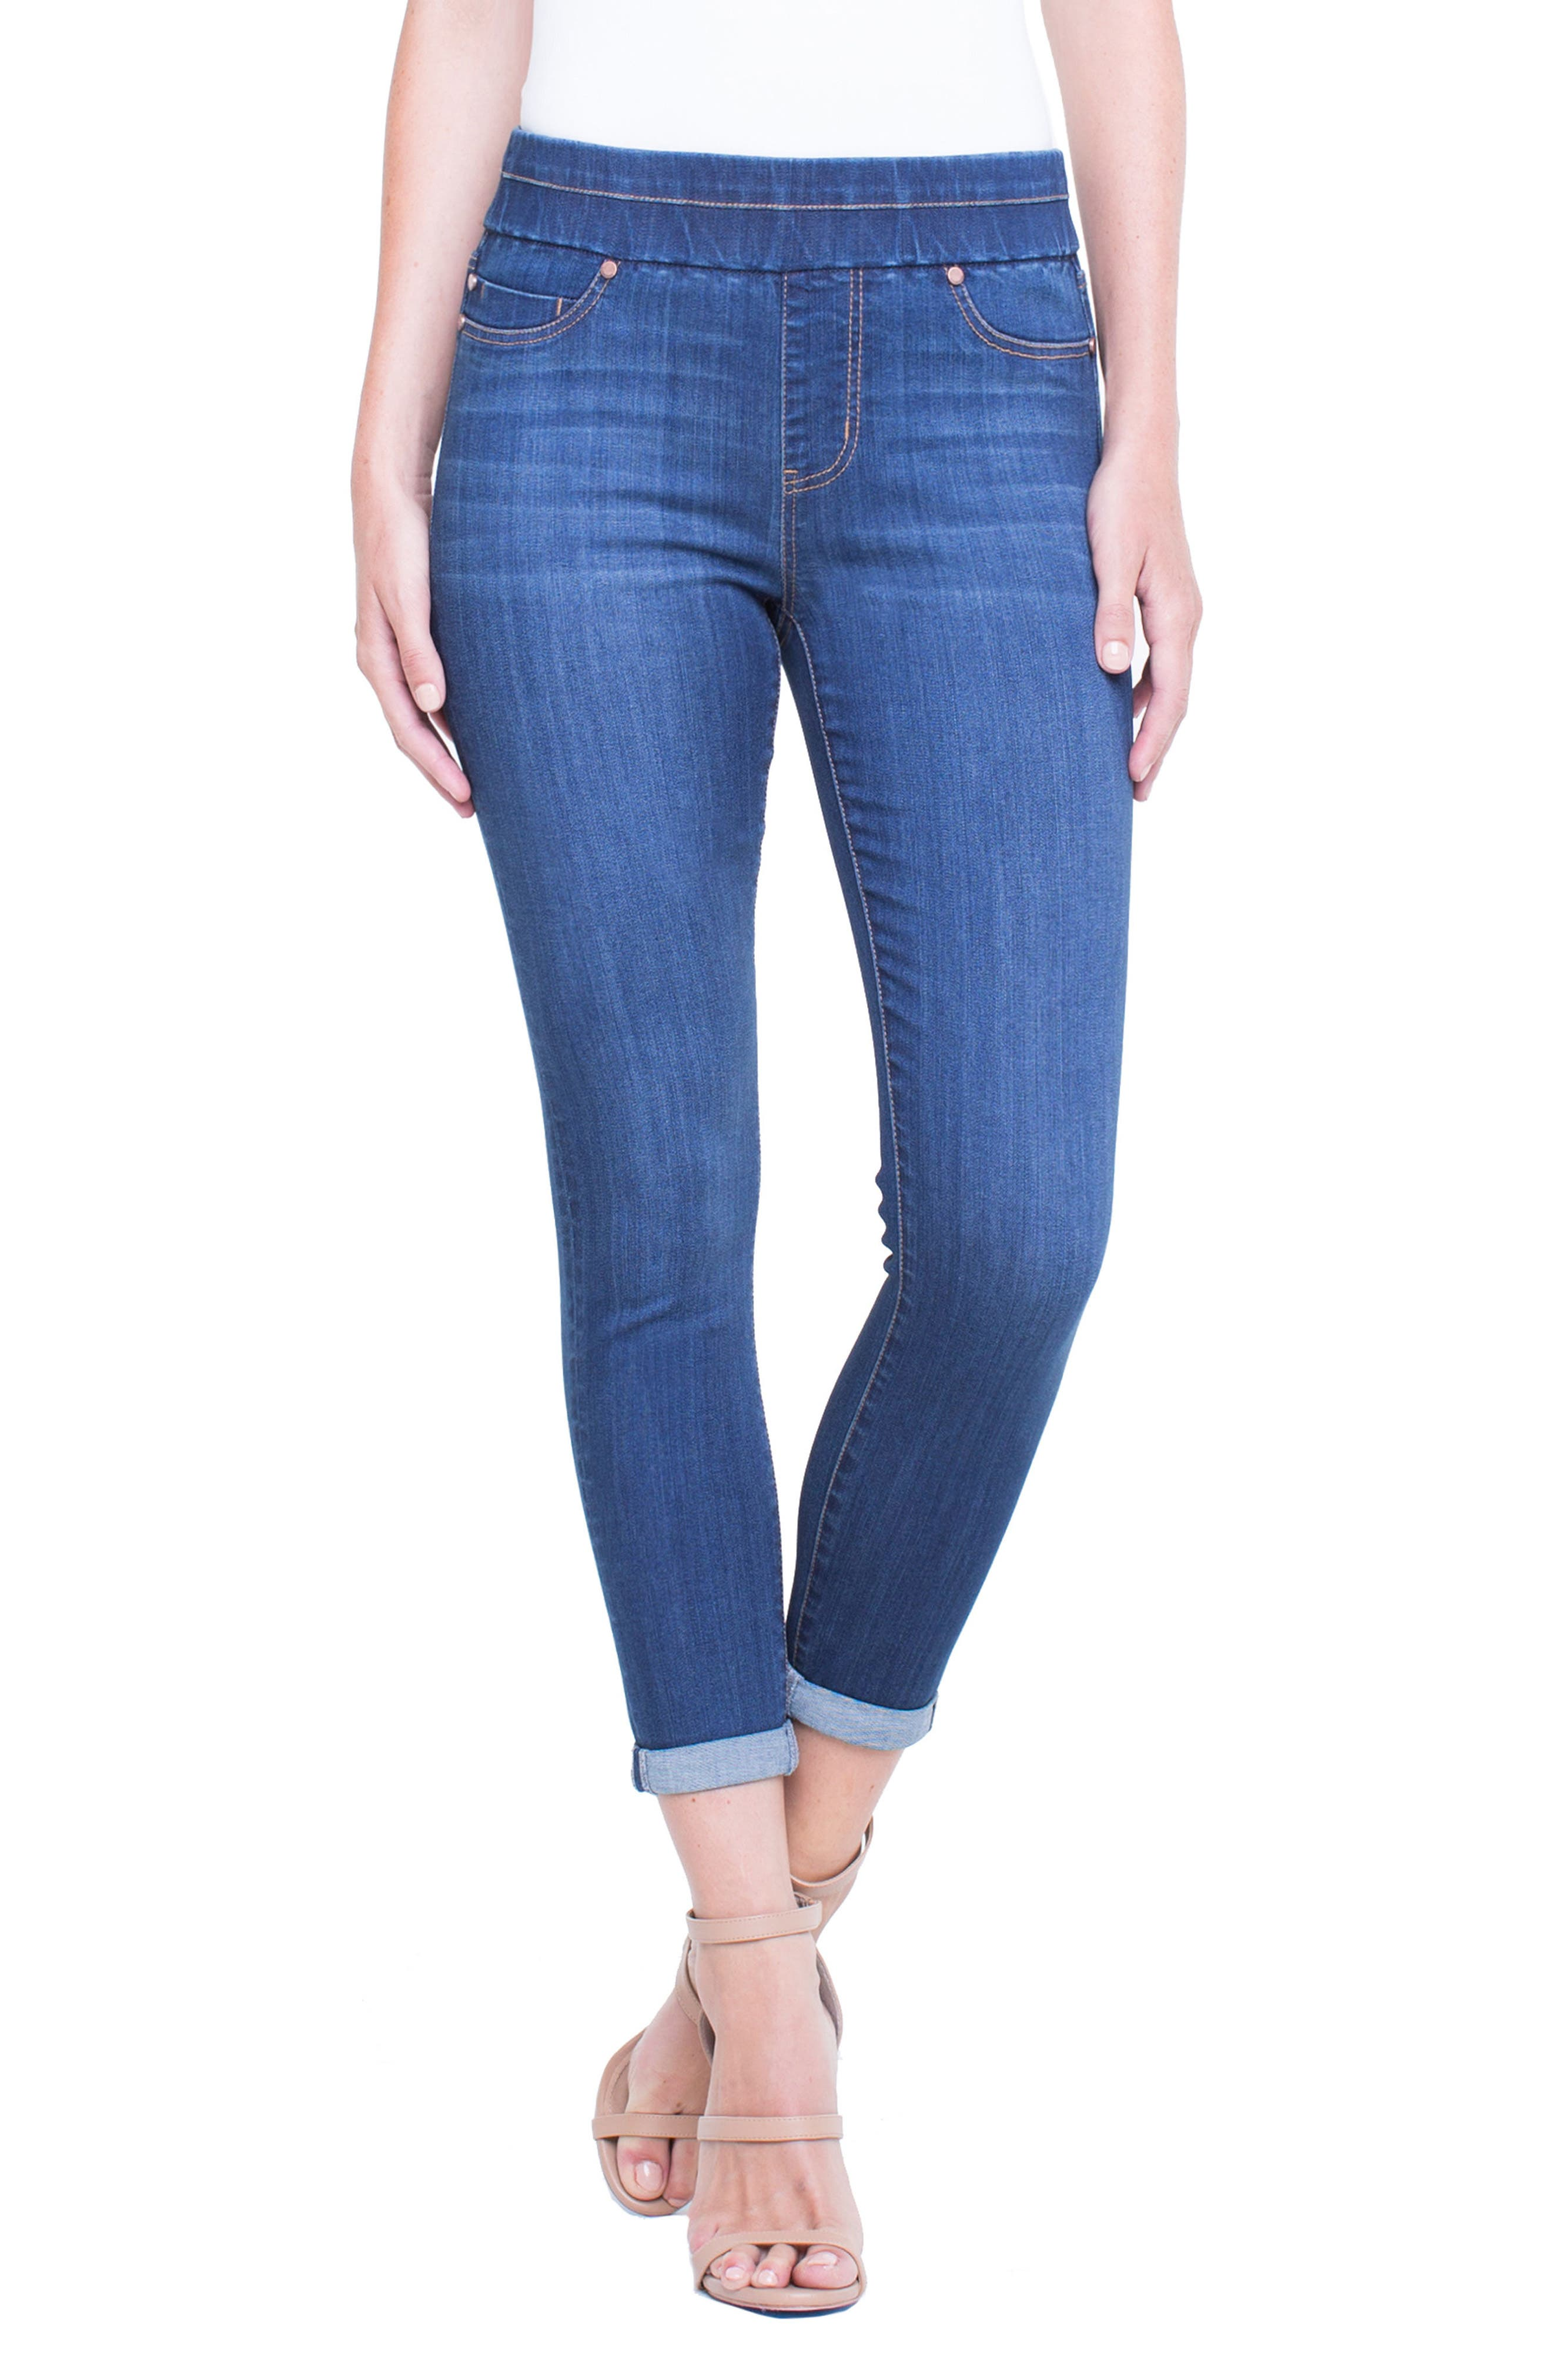 Liverpool Jeans Company Zoe Pull-On Rolled Cuff Crop Jeans